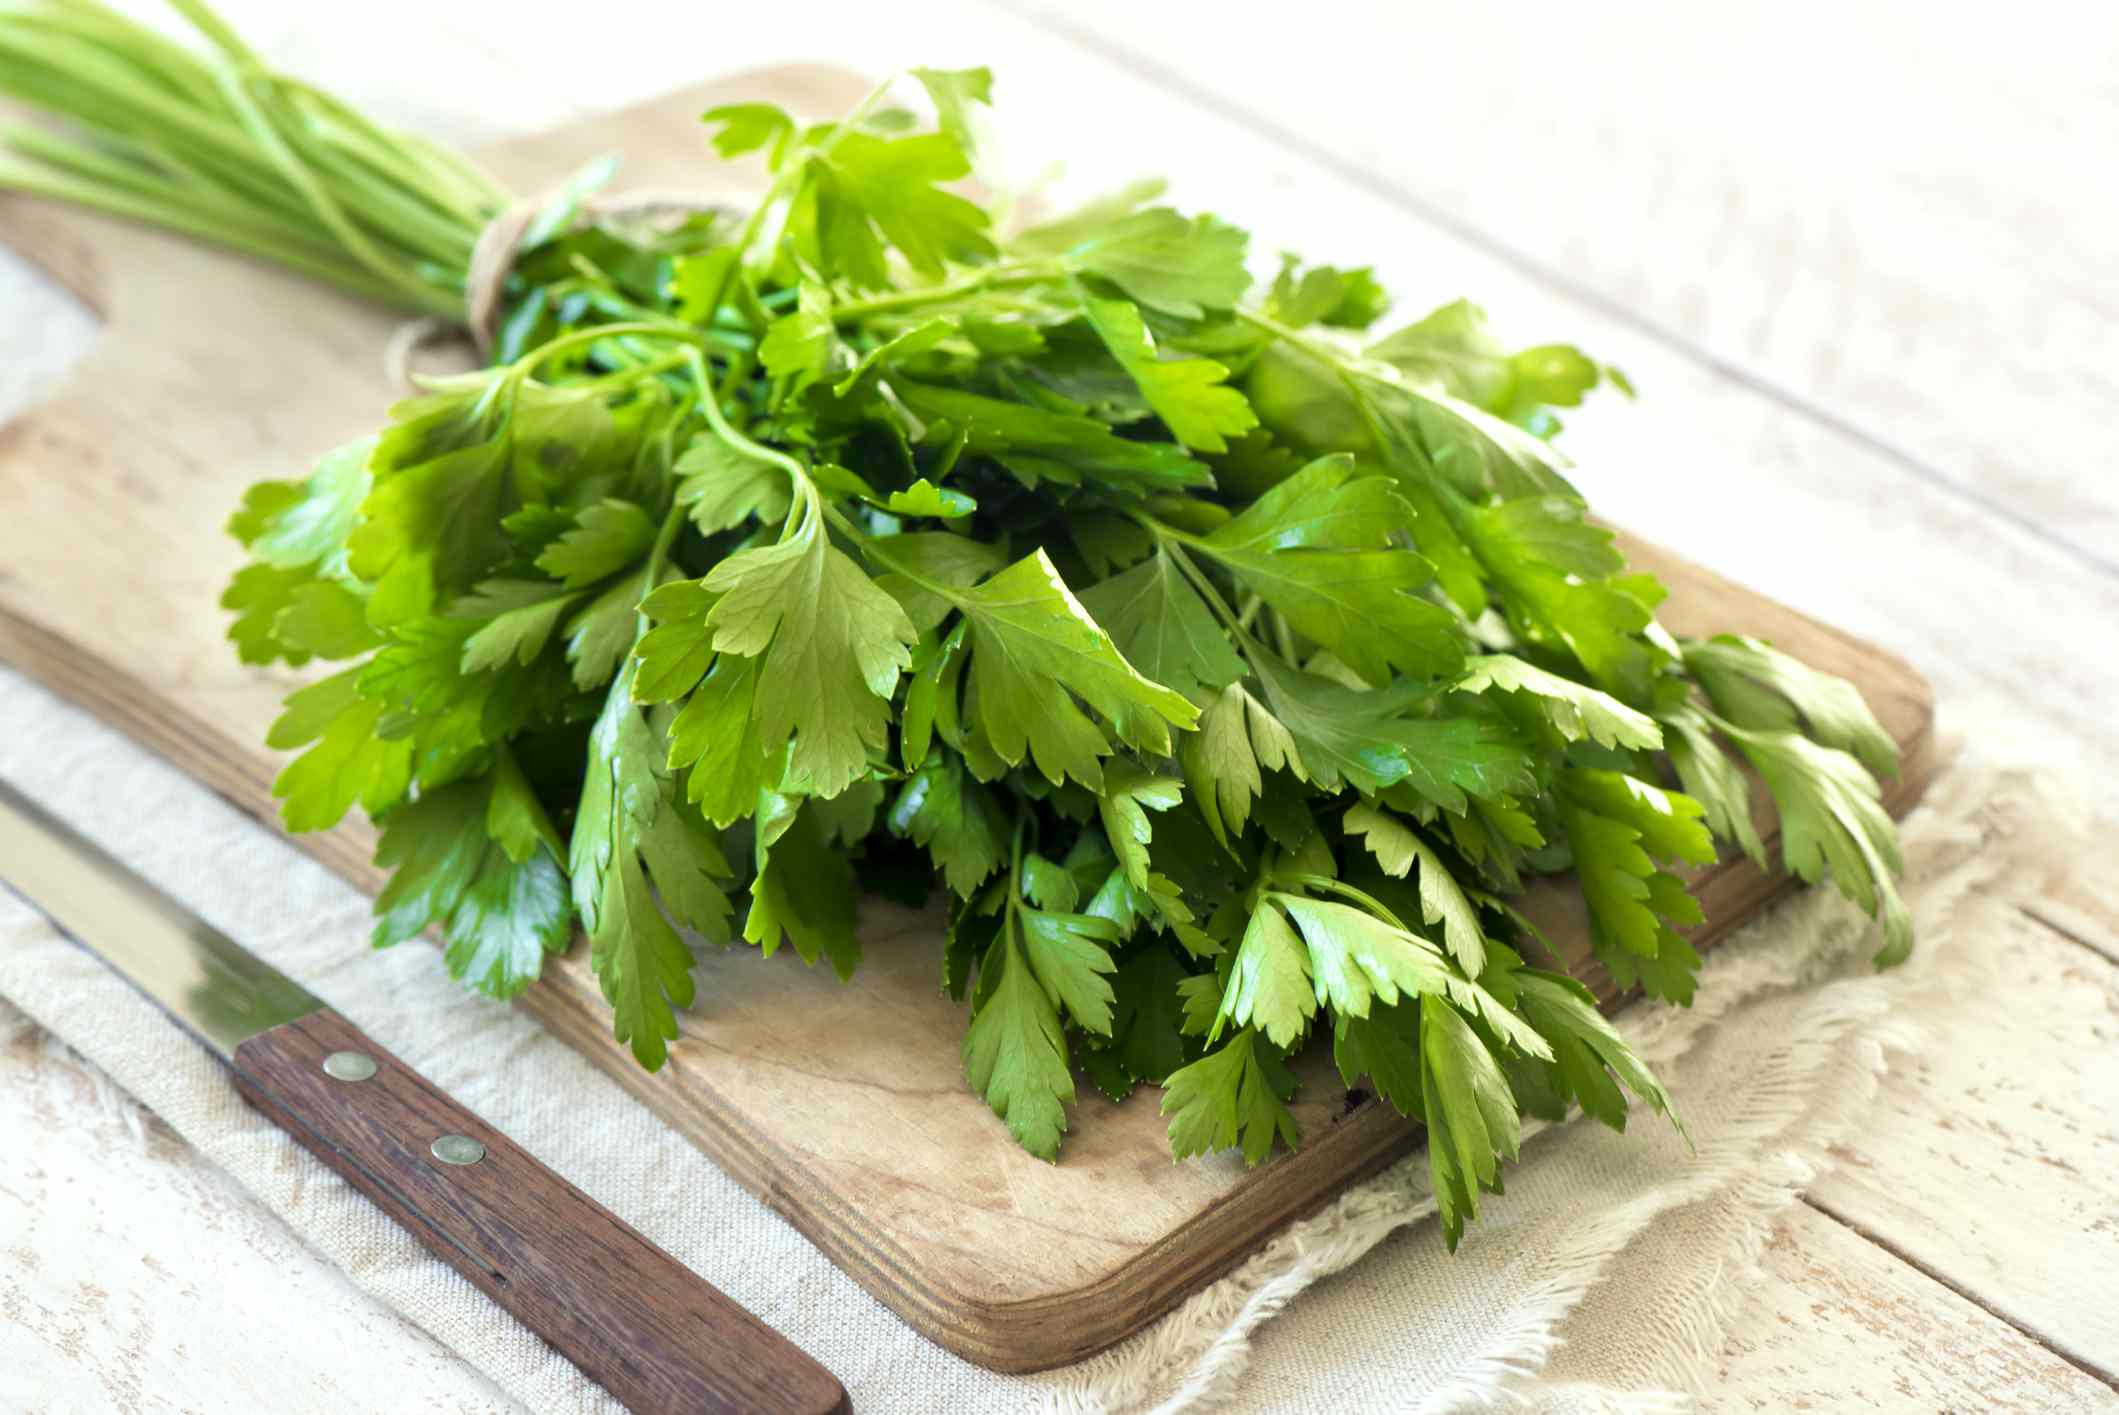 Bunch of Italian parsley closeup on rustic wooden table